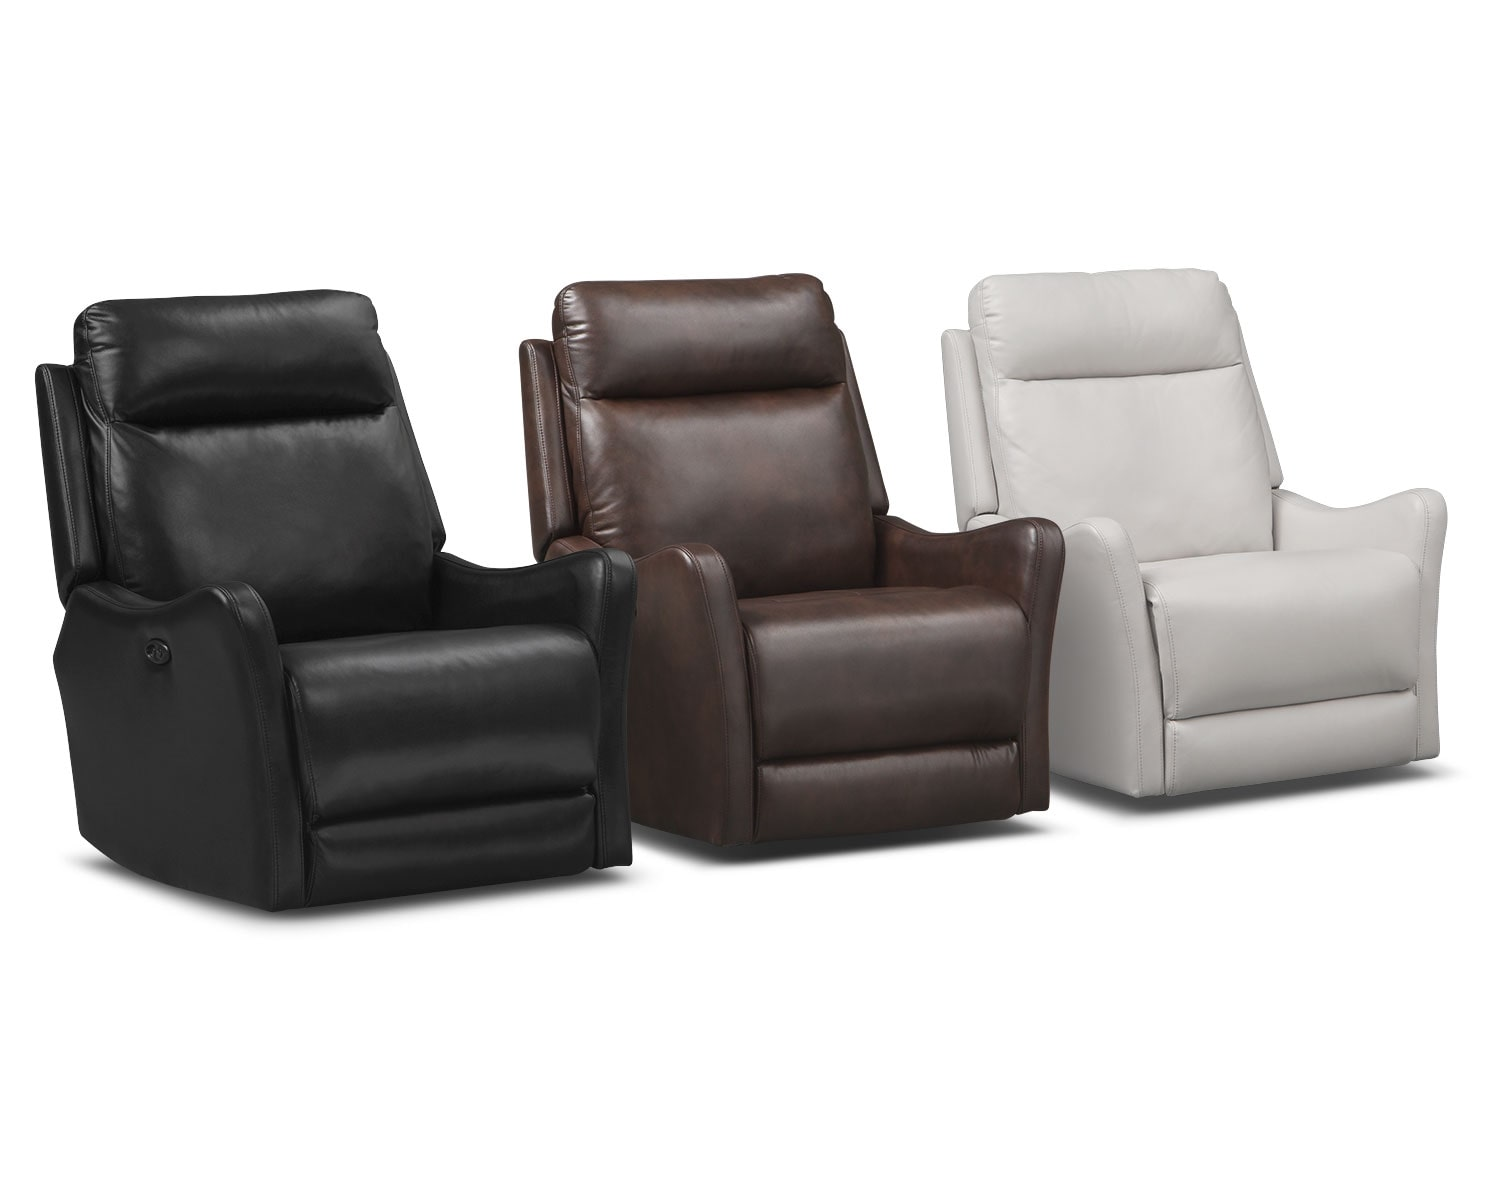 [The Enzo Power Recliner Collection]